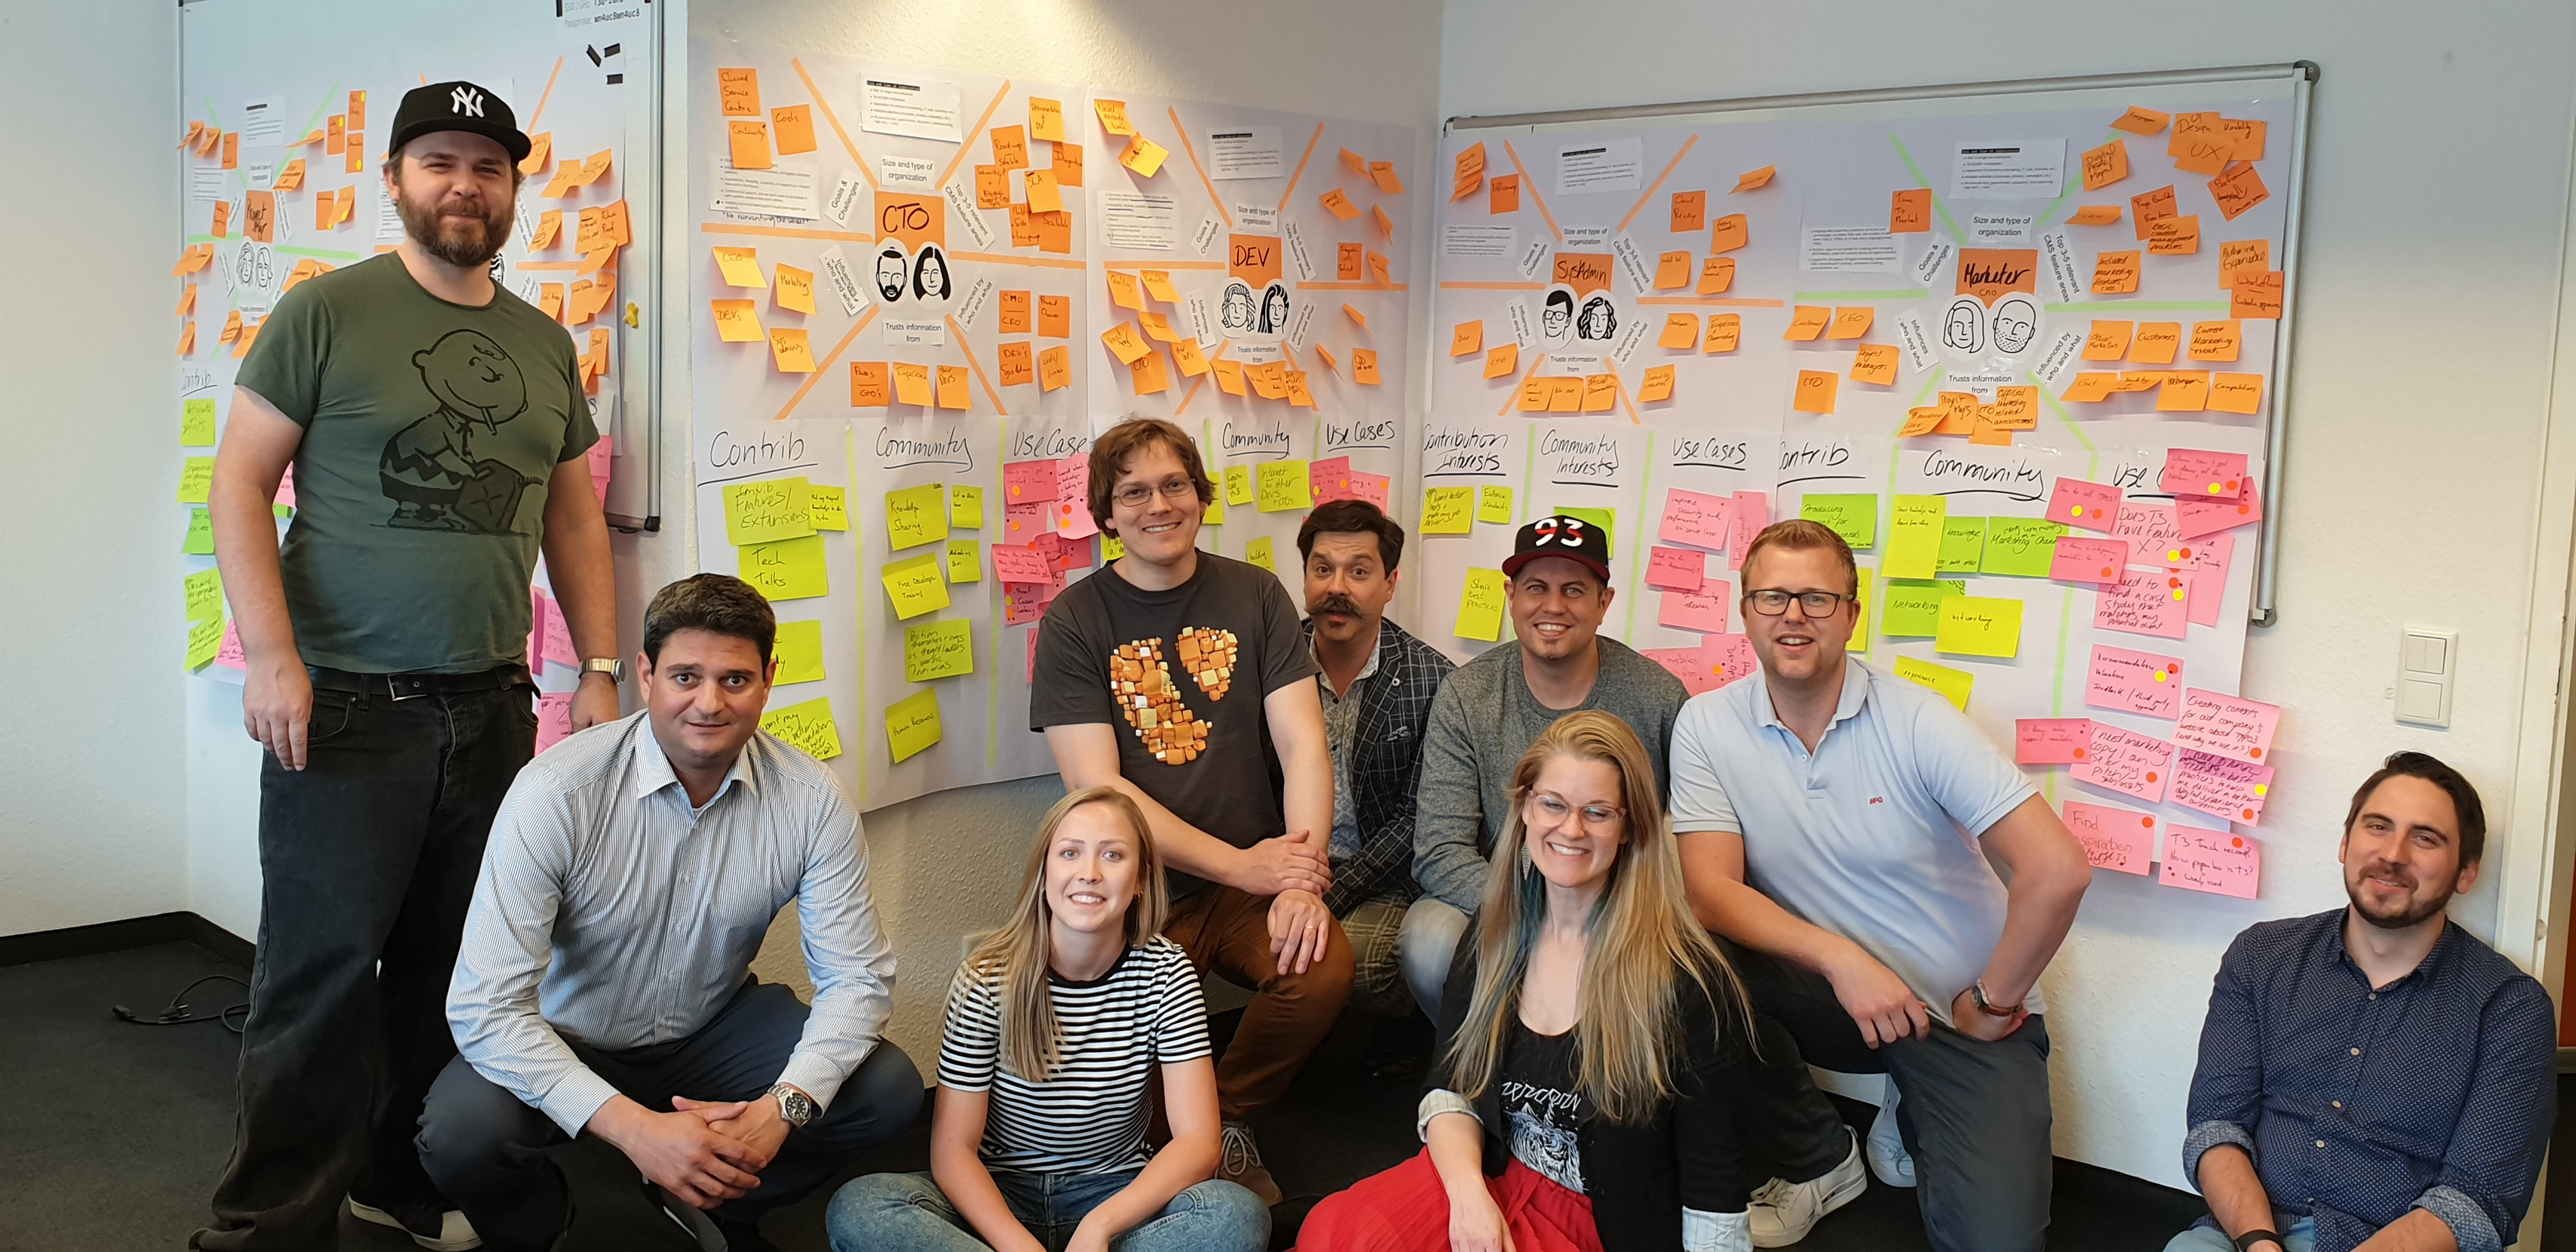 Gruppenfoto TYPO3 Marketing Sprint 2019